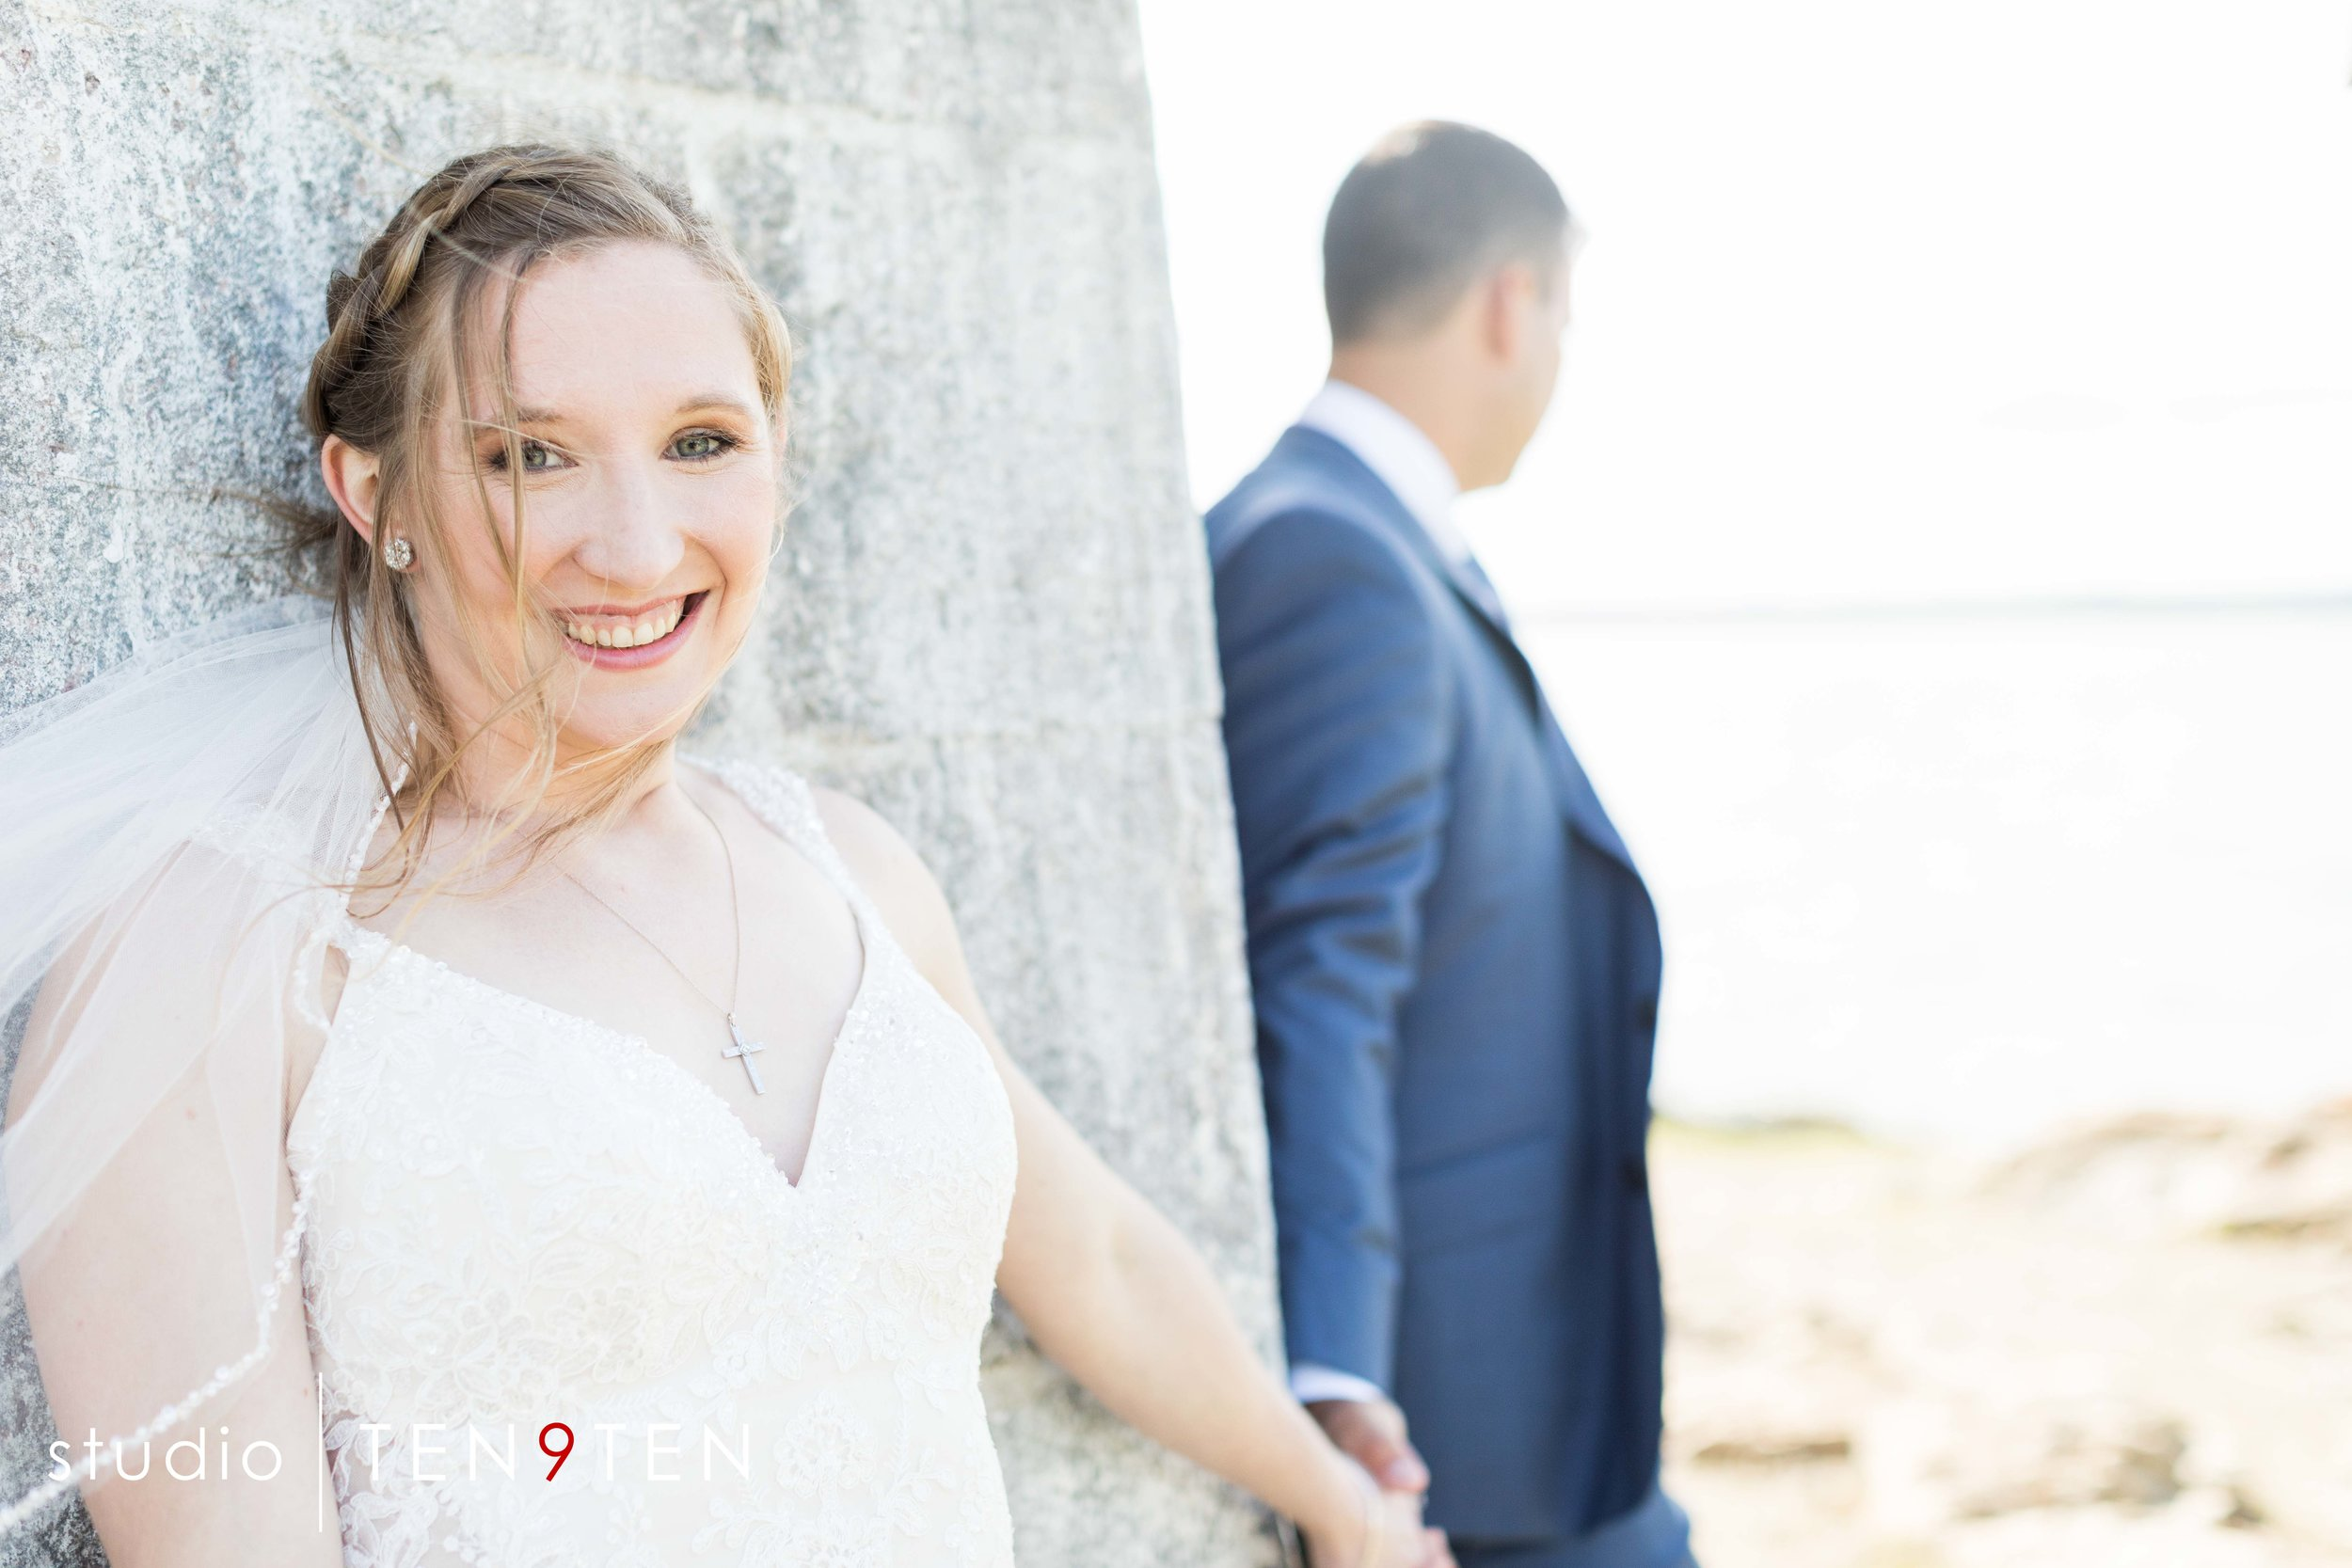 Connecticuts best wedding photographer